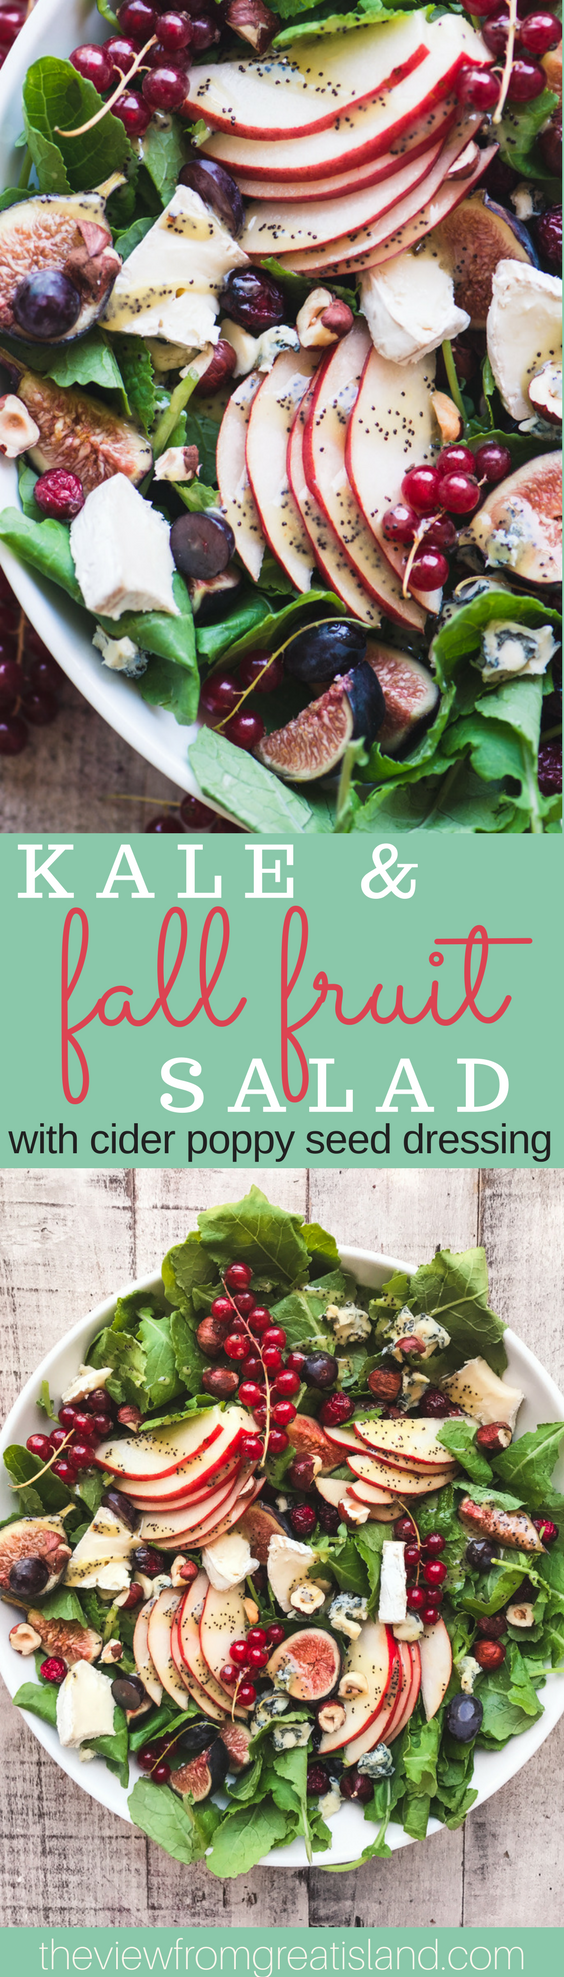 Kale and Fall Fruit Salad with Cider Poppy Seed Dressing ~ this is the Queen of fall salads, with pear, cranberries, figs, pomegranate, and grapes, all tossed in a creamy cider vinaigrette. #fall #healthy #paleo #glutenfree #whole30 #vegetarian #fallsalad #fruitsalad #fallfruit #poppyseeddressing #bestpoppyseeddressing #holidaysalad #thanksgivingside #superfood #kale